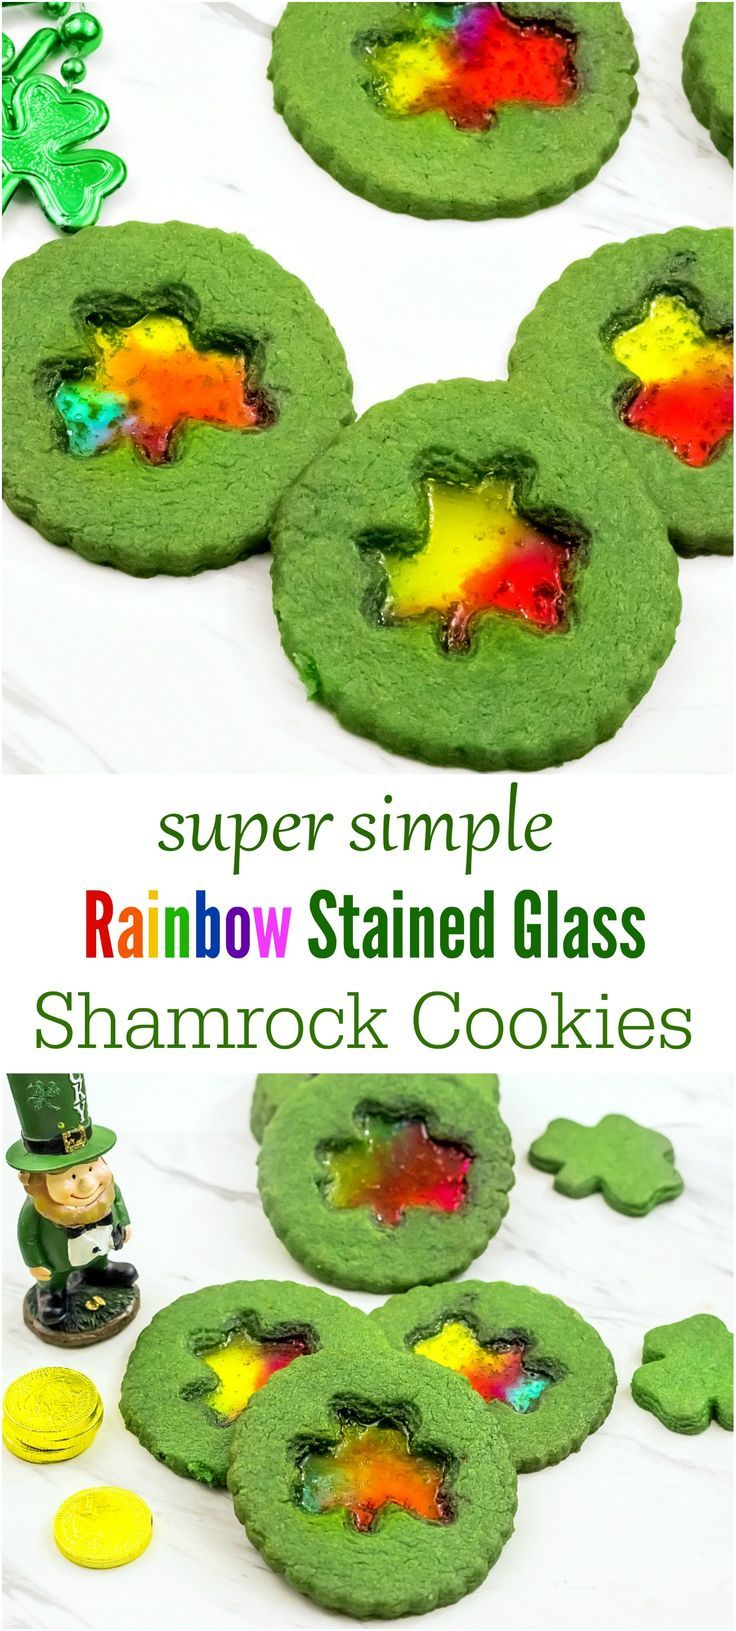 Impress your kids and their friends with these super easy, adorable St.Patrick's Day Shamrock cookies. The stained glass middle is almost too pretty to eat.